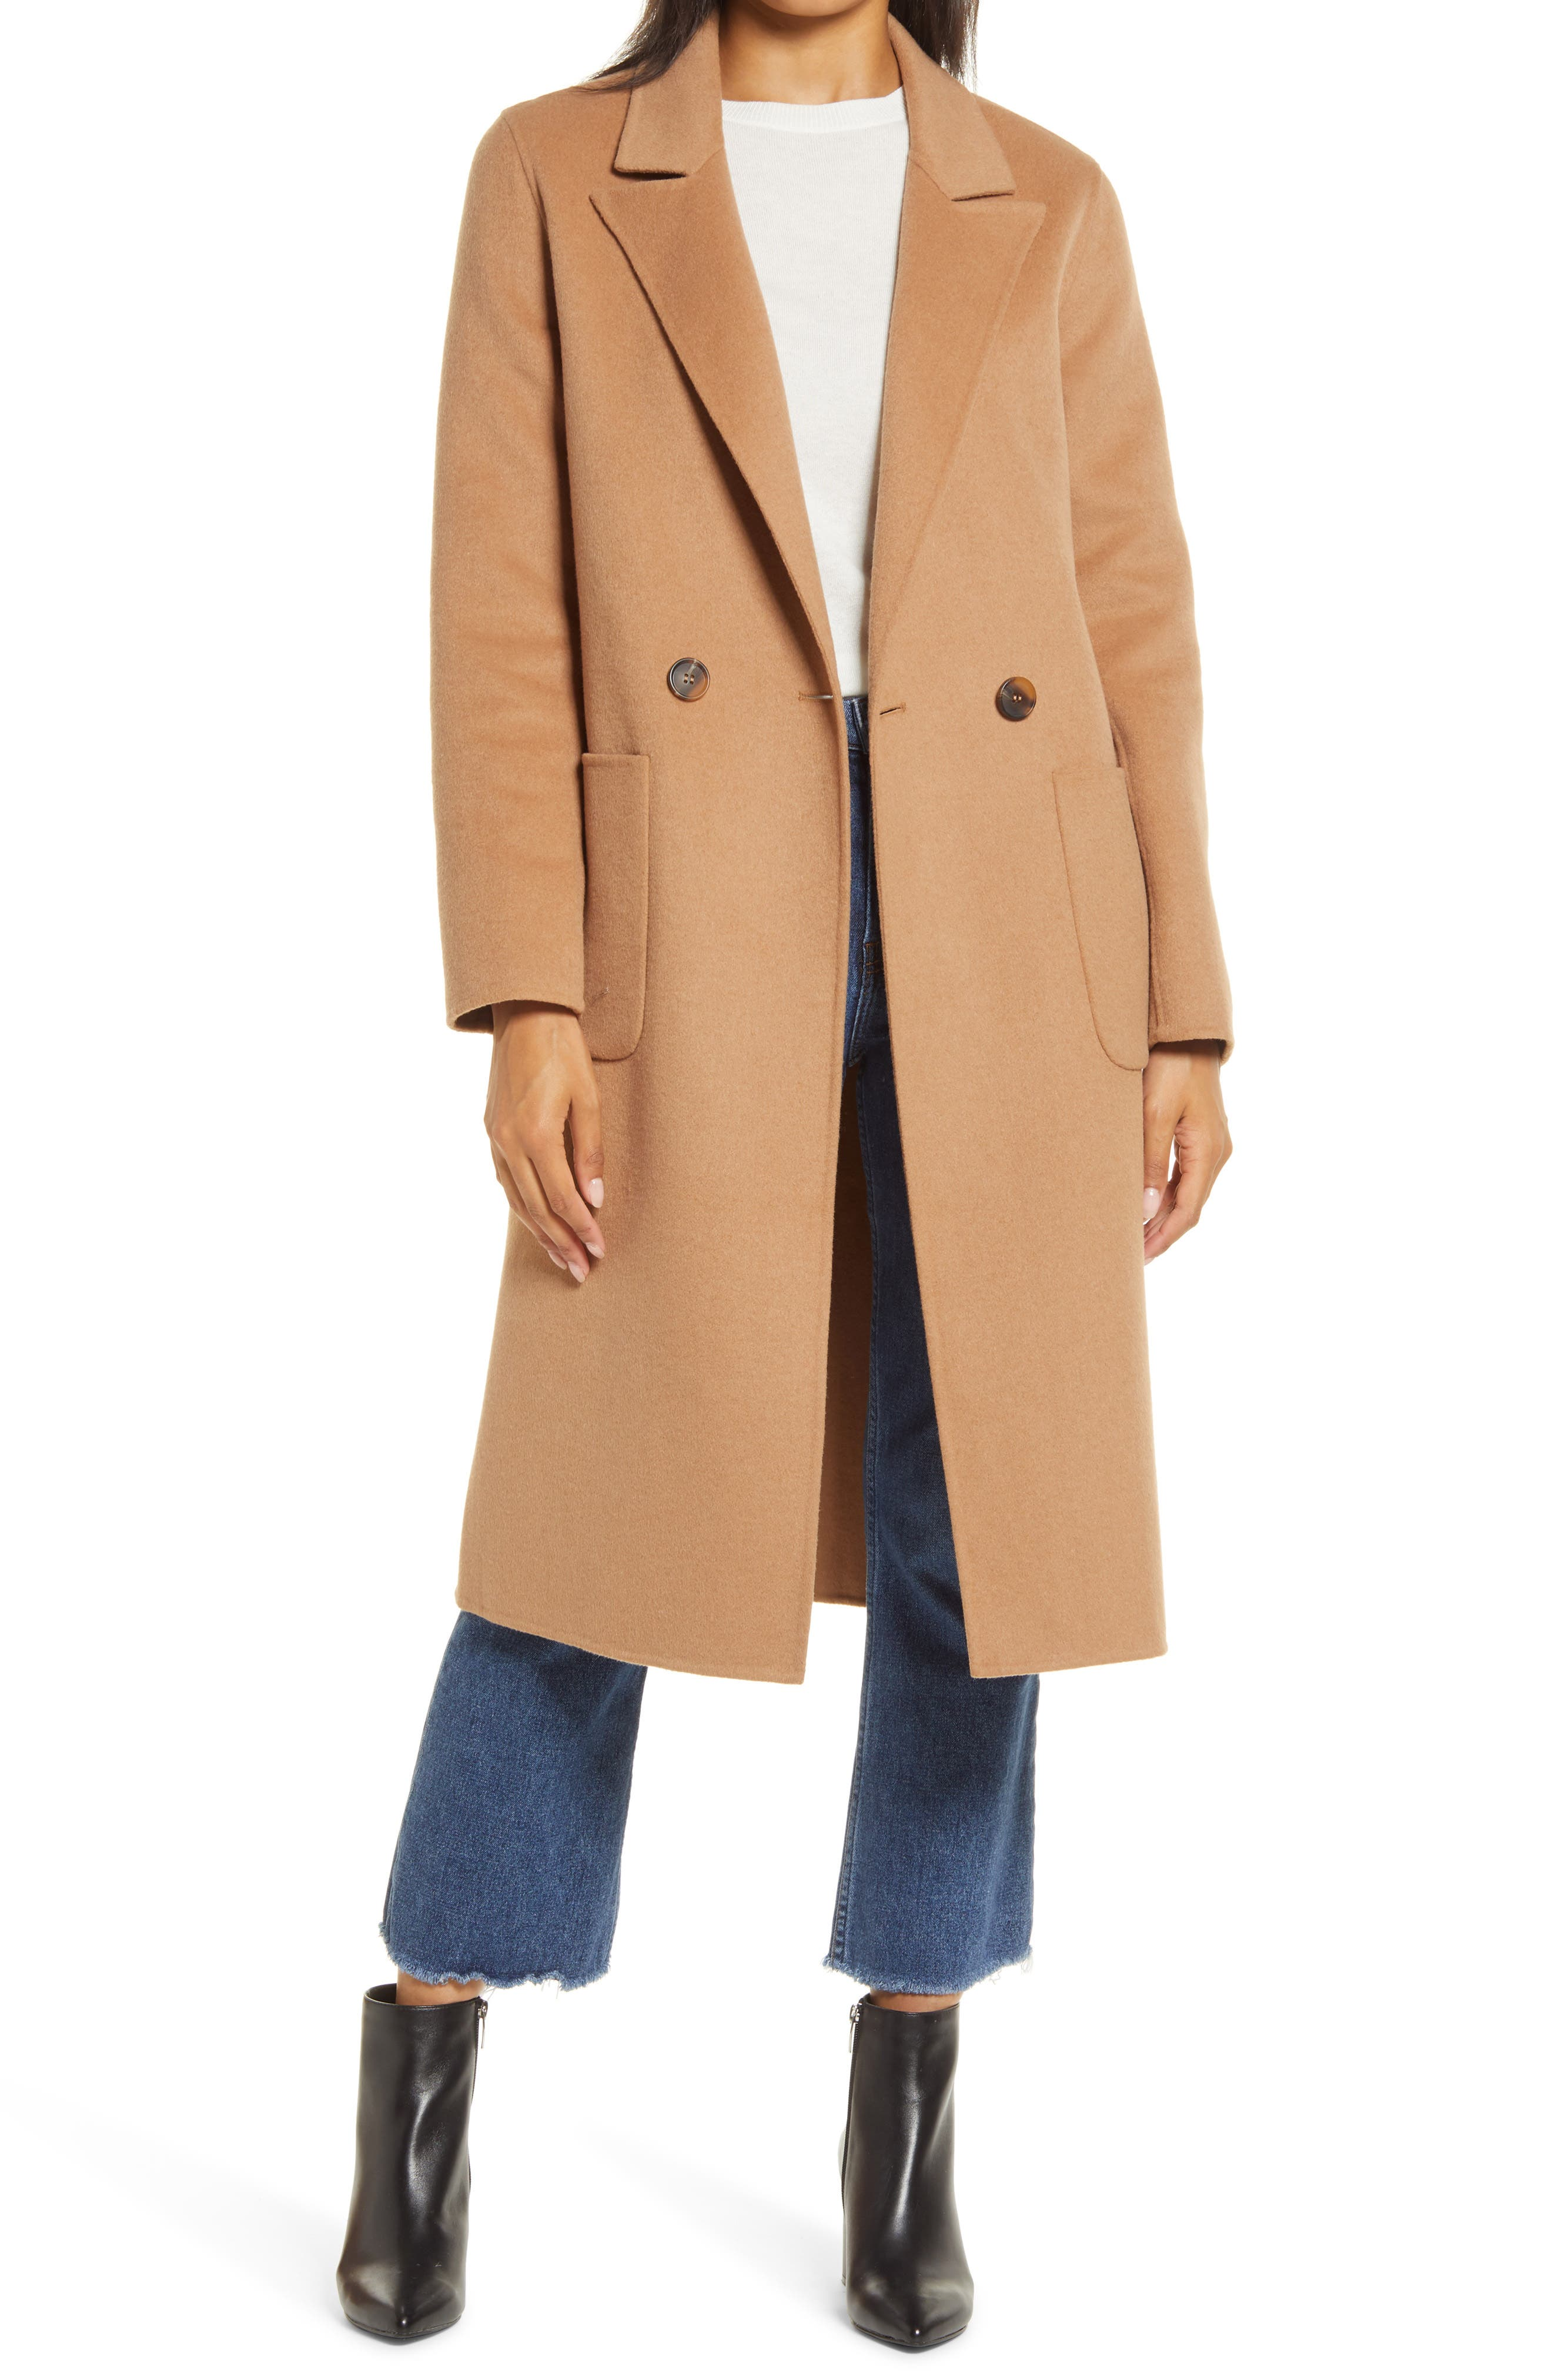 1920s Coats, Furs, Jackets and Capes History Womens Halogen Double Face Wool Coat $74.97 AT vintagedancer.com